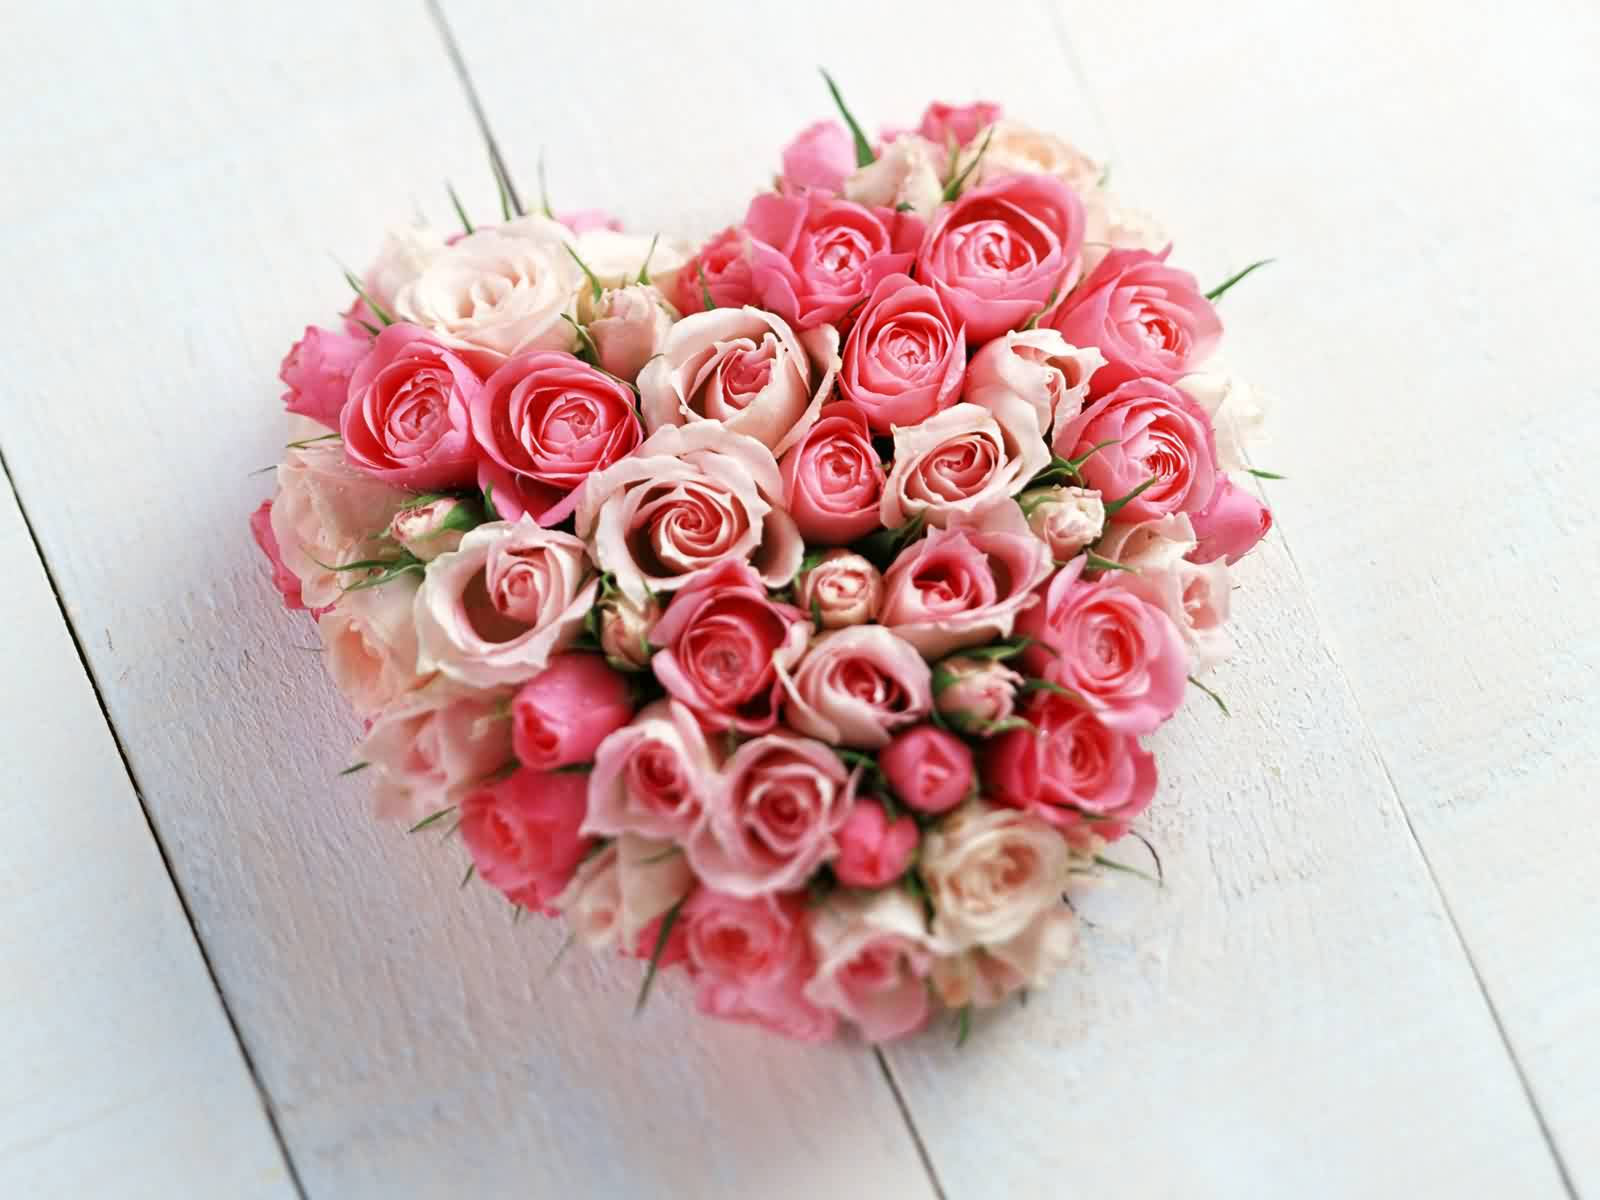 valentines day cape cod rose bunch hd wallpaper